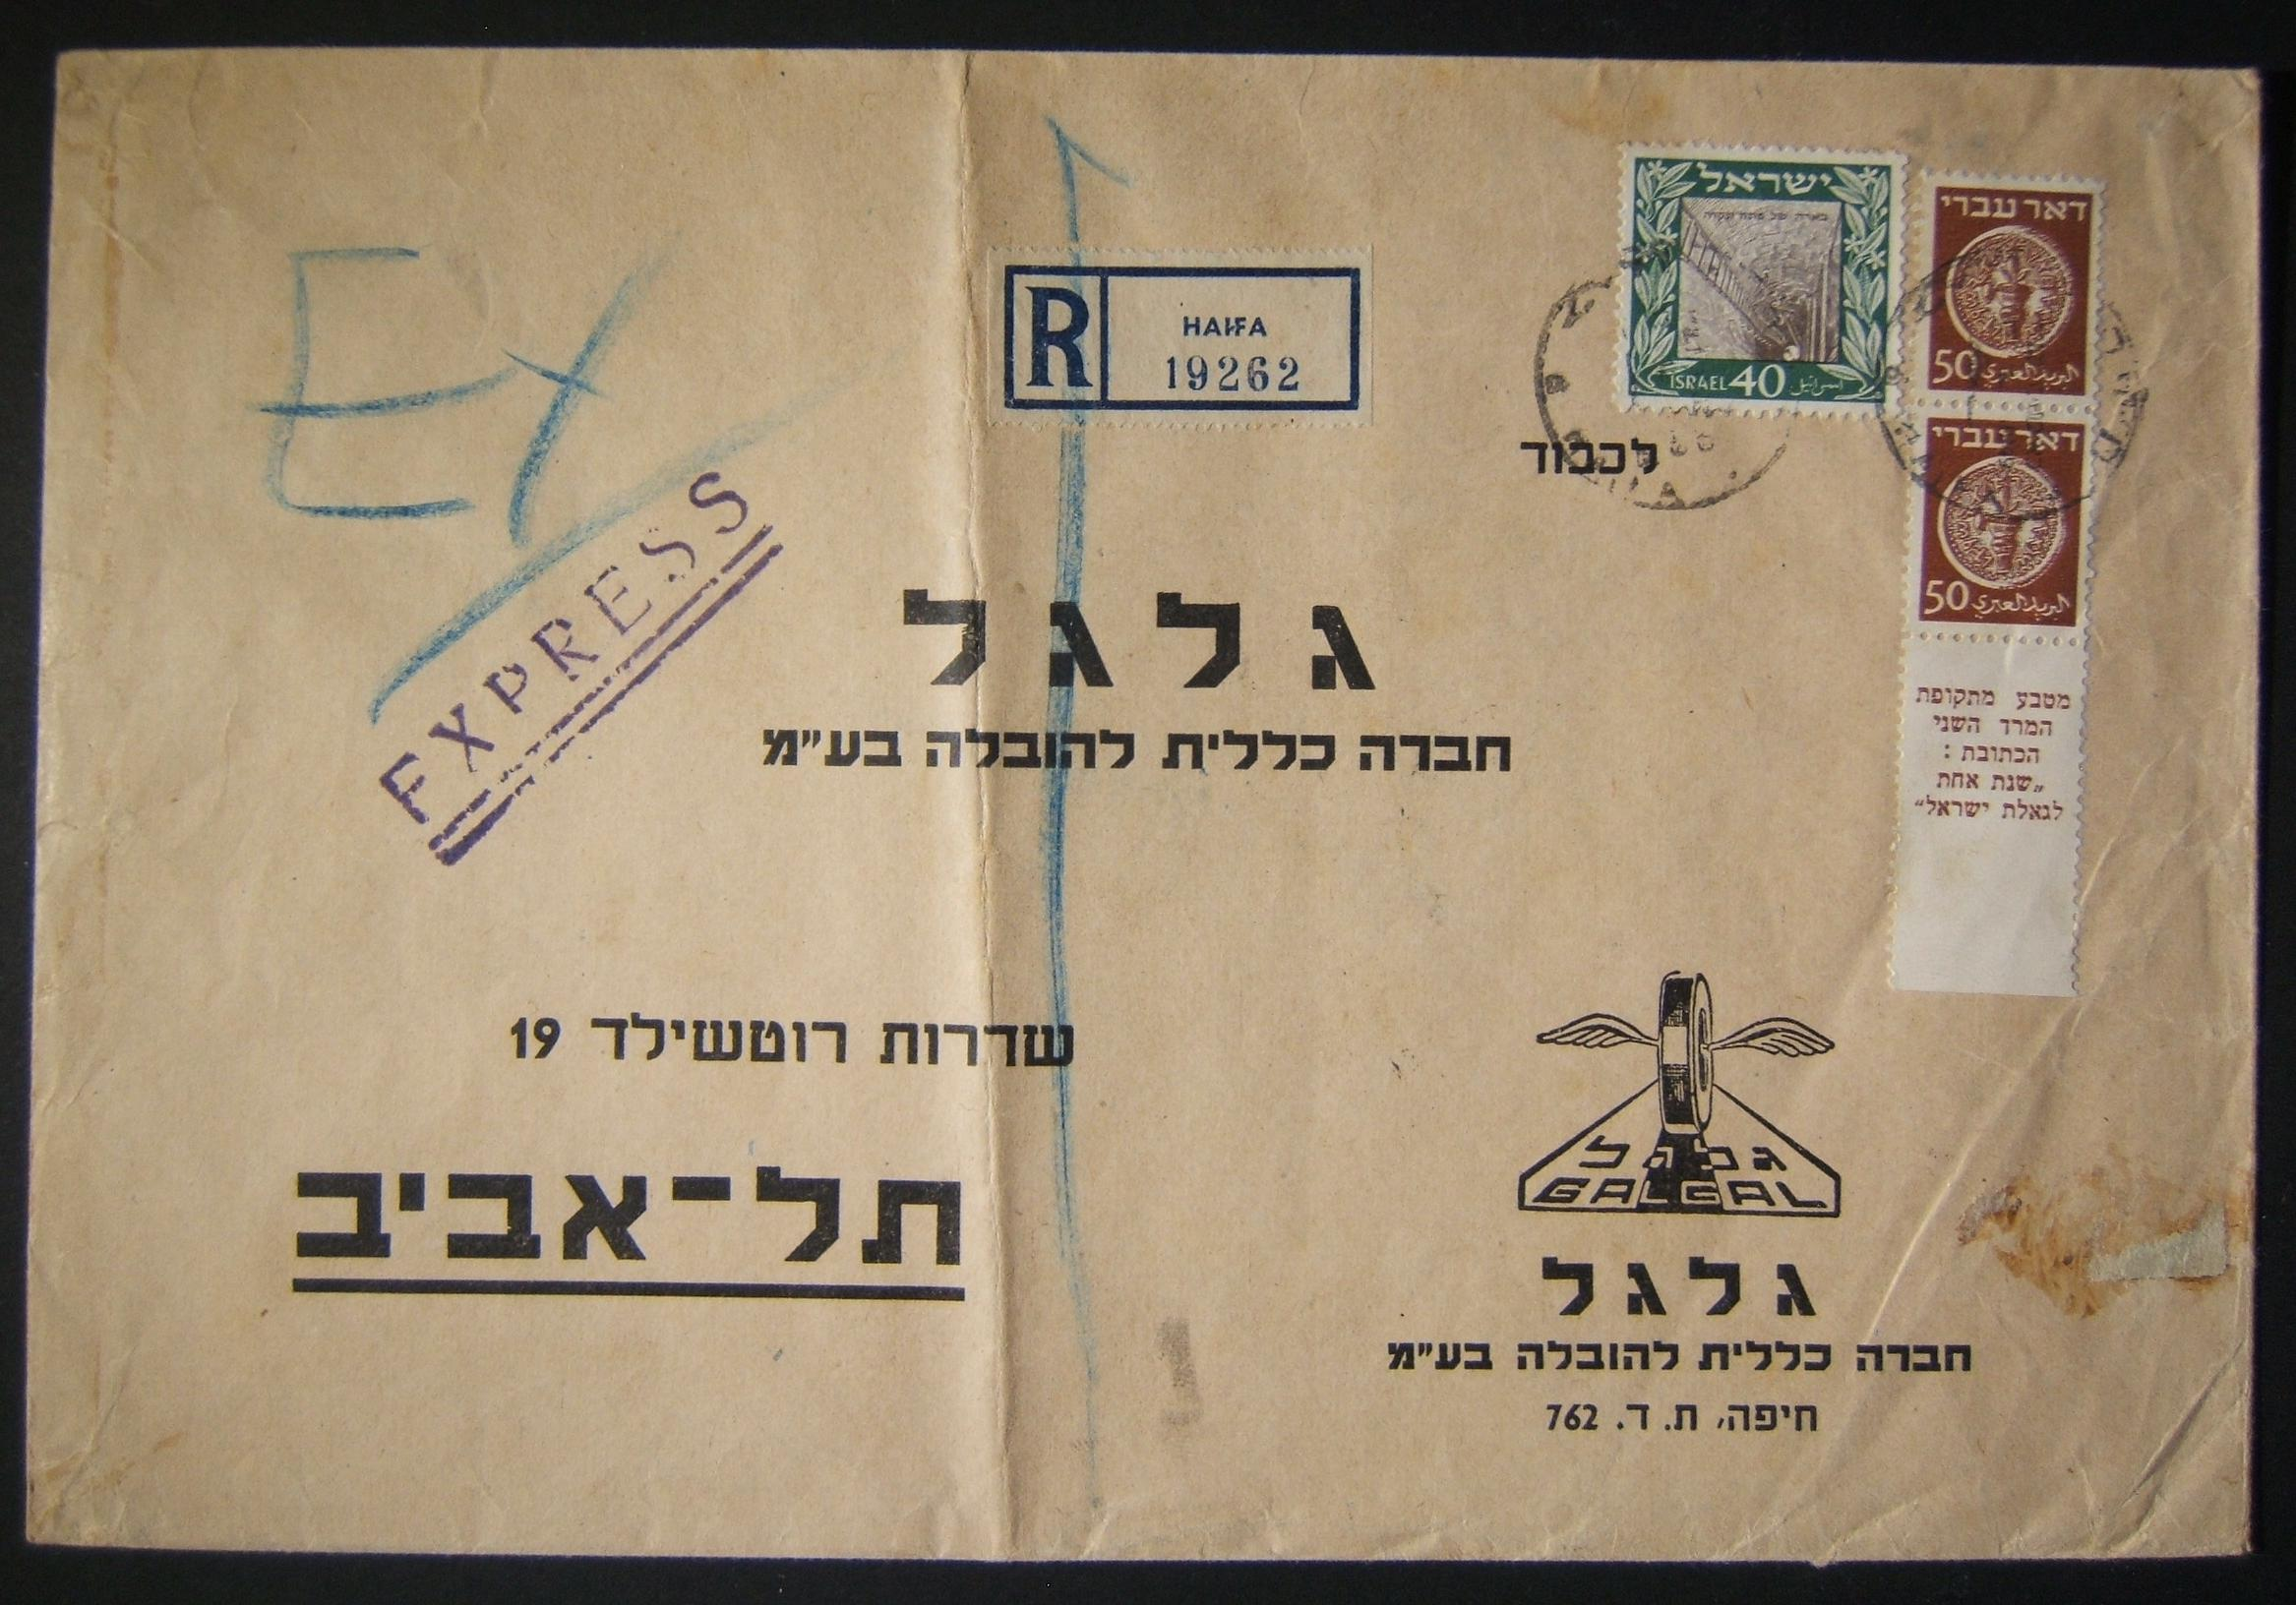 1949 6x time heavy weight express registered mail with Doar Ivri & Petach Tikva franks